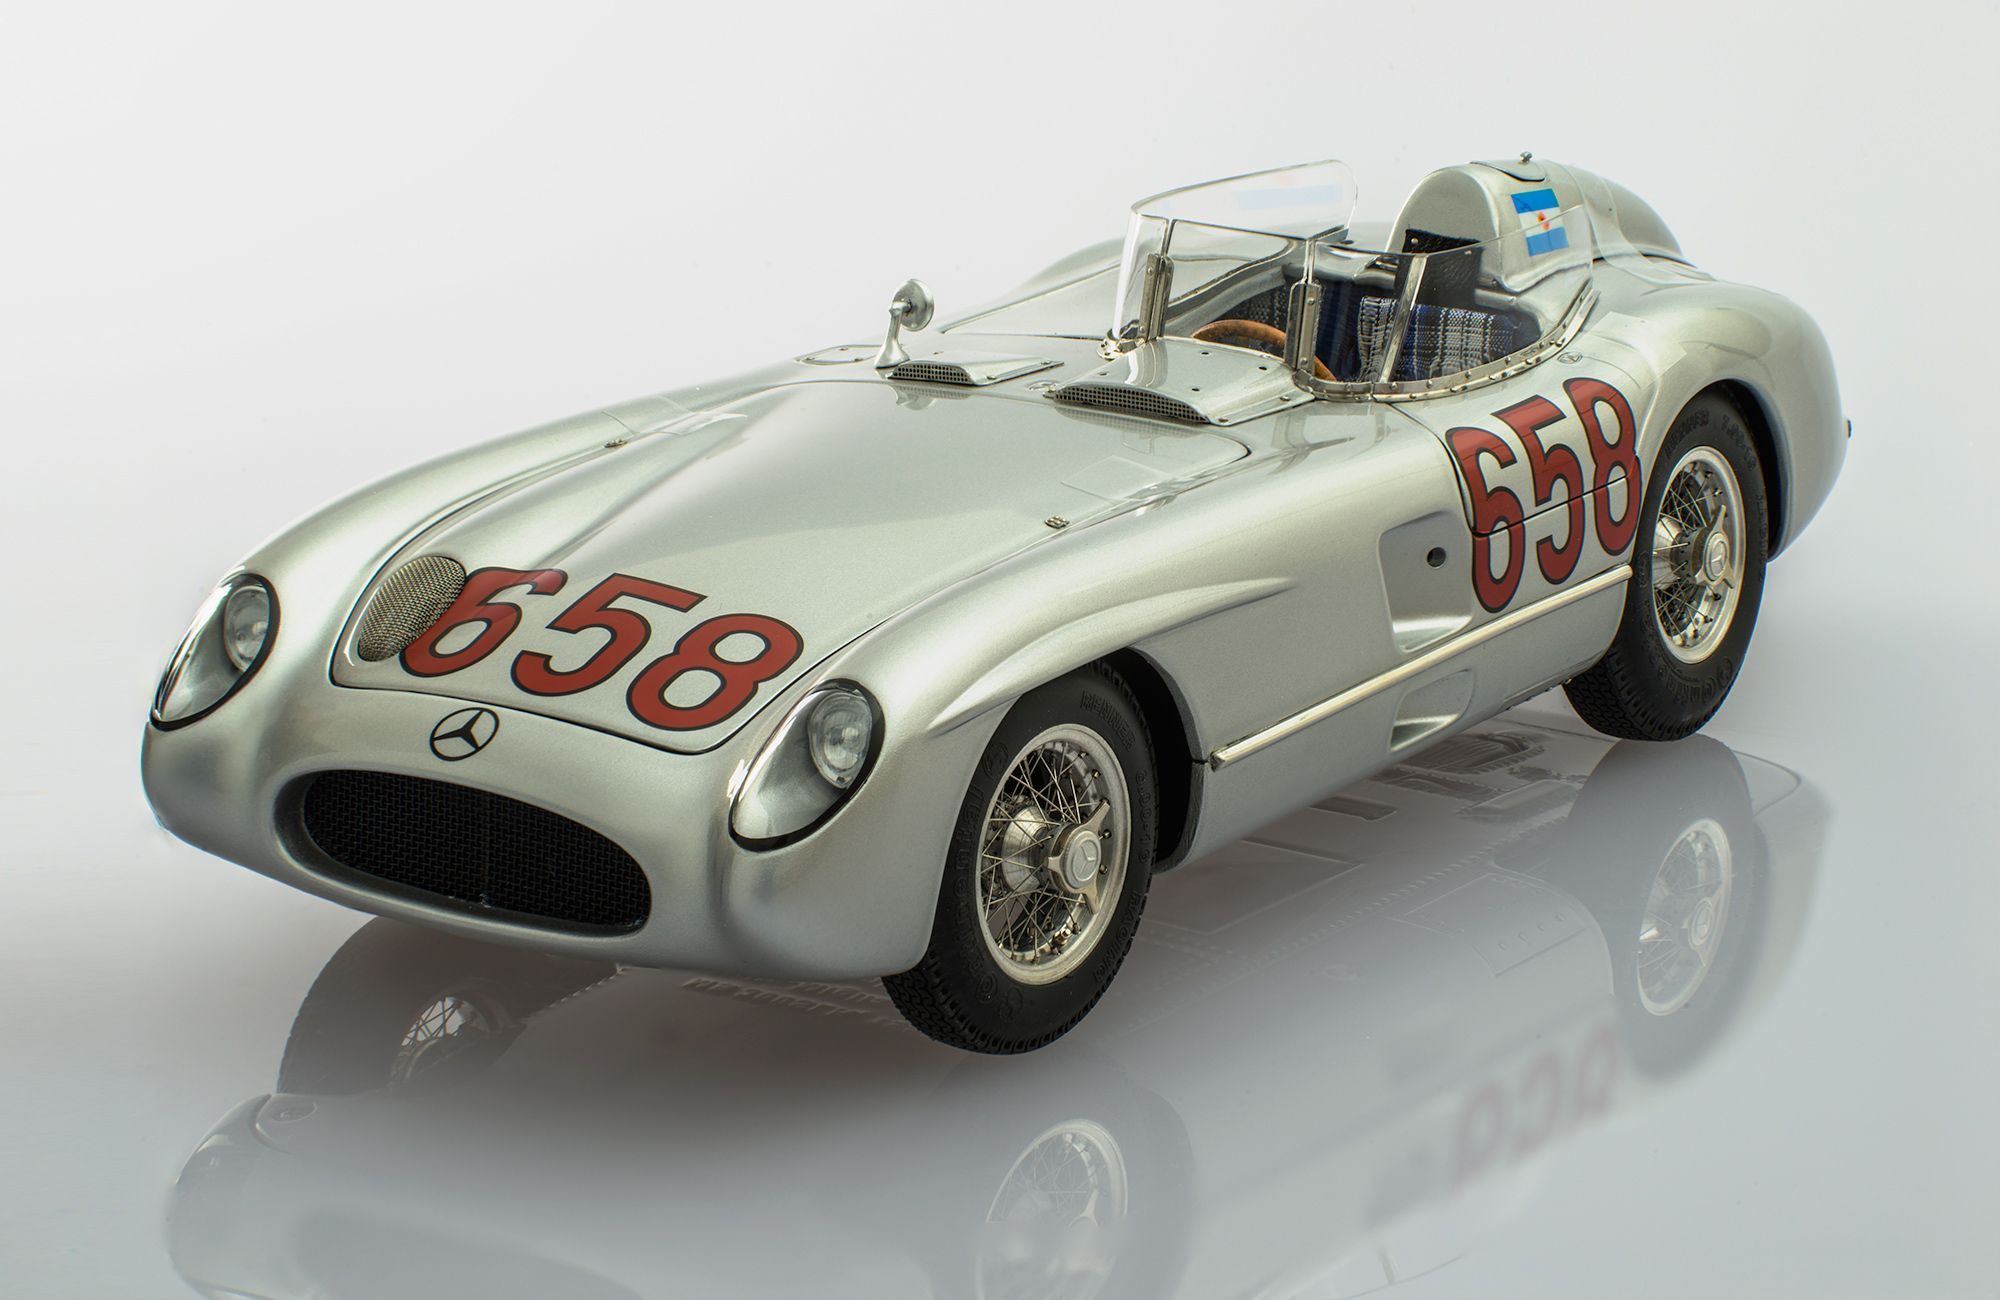 Mercedes Benz 300 Slr Mille Miglia 658 By Cmc With Images